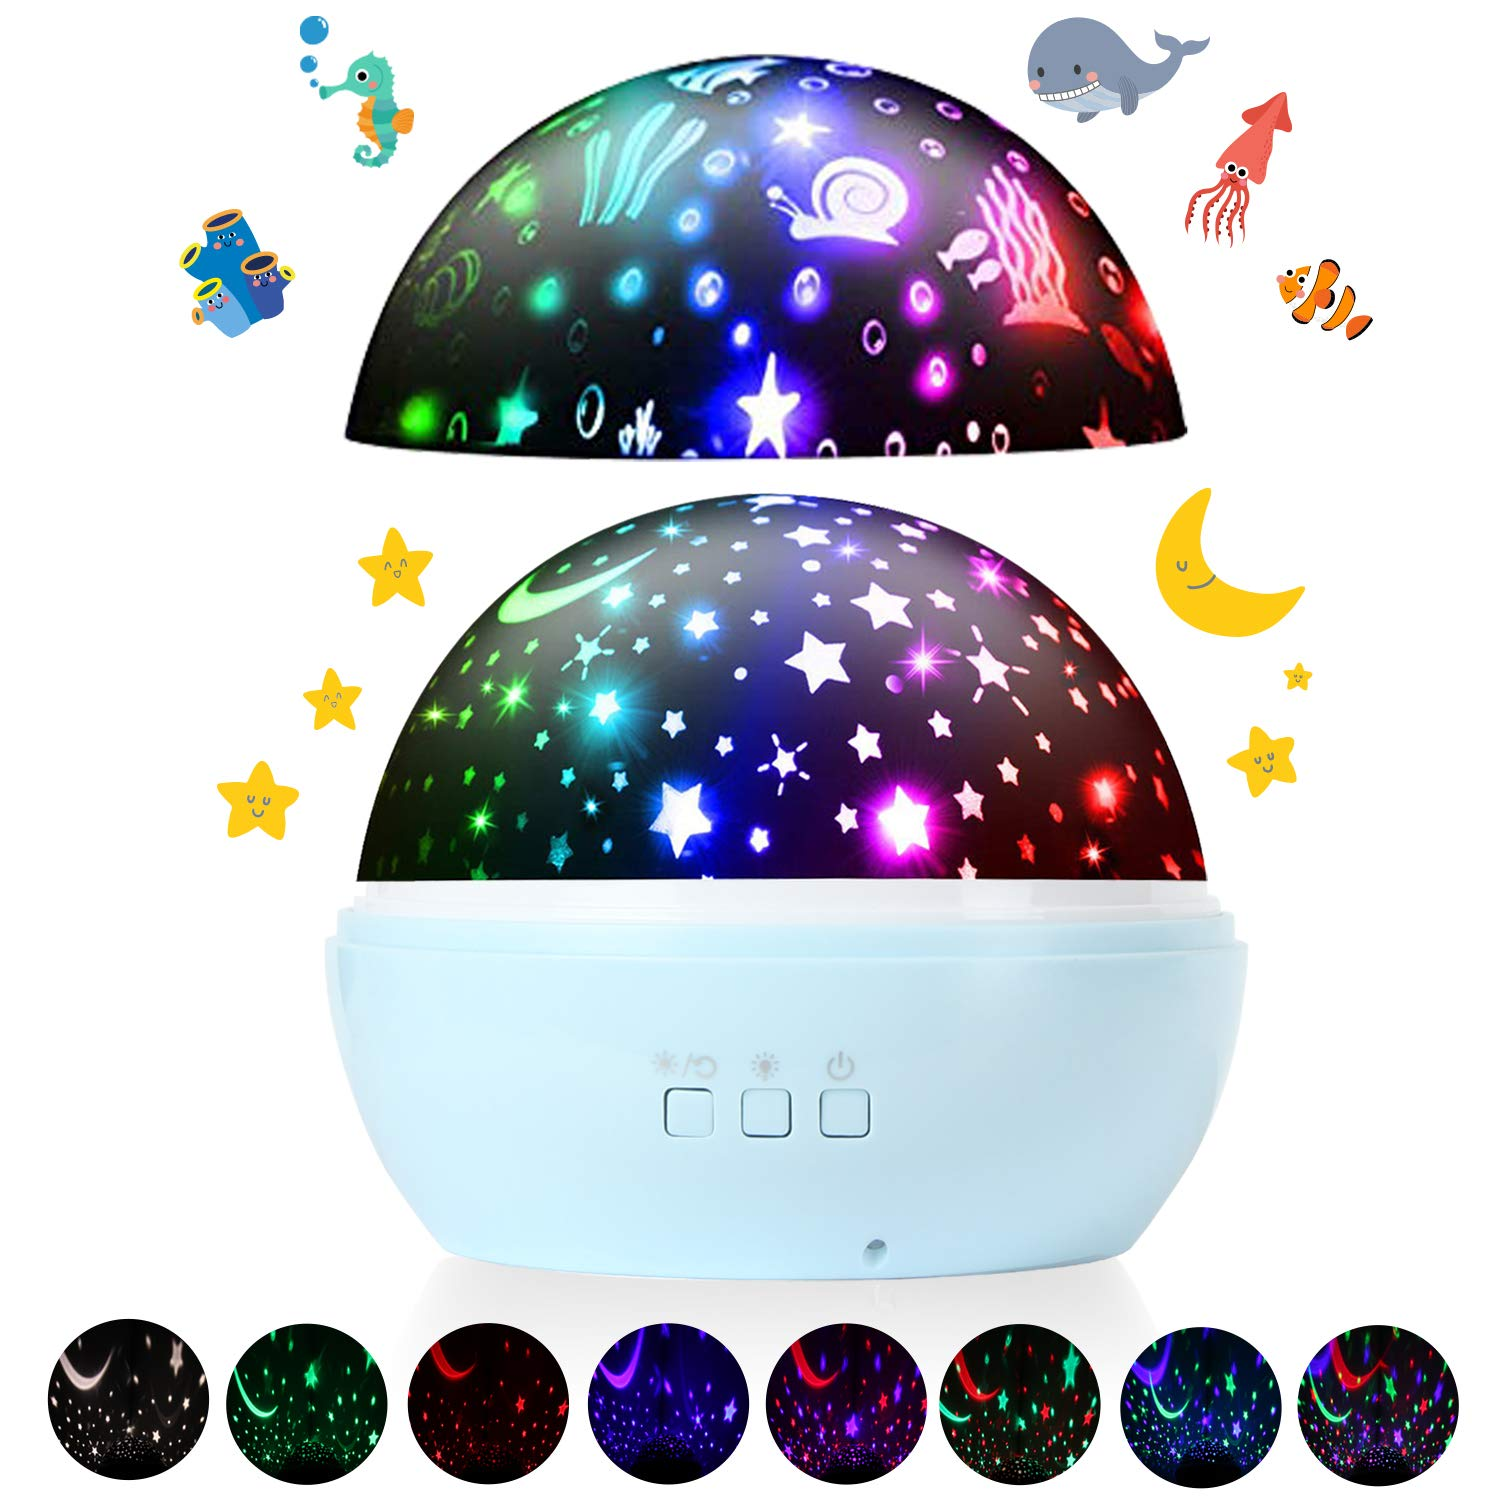 Star Projector Night Lights, 360-Degree Rotation Starry Sky & Ocean Projection LED Lamp 8 Colors Mode with USB Cable, Gifts for Adults Teens Kids Girls Boys Baby Toddler Bedroom Nursery Decor(Blue)